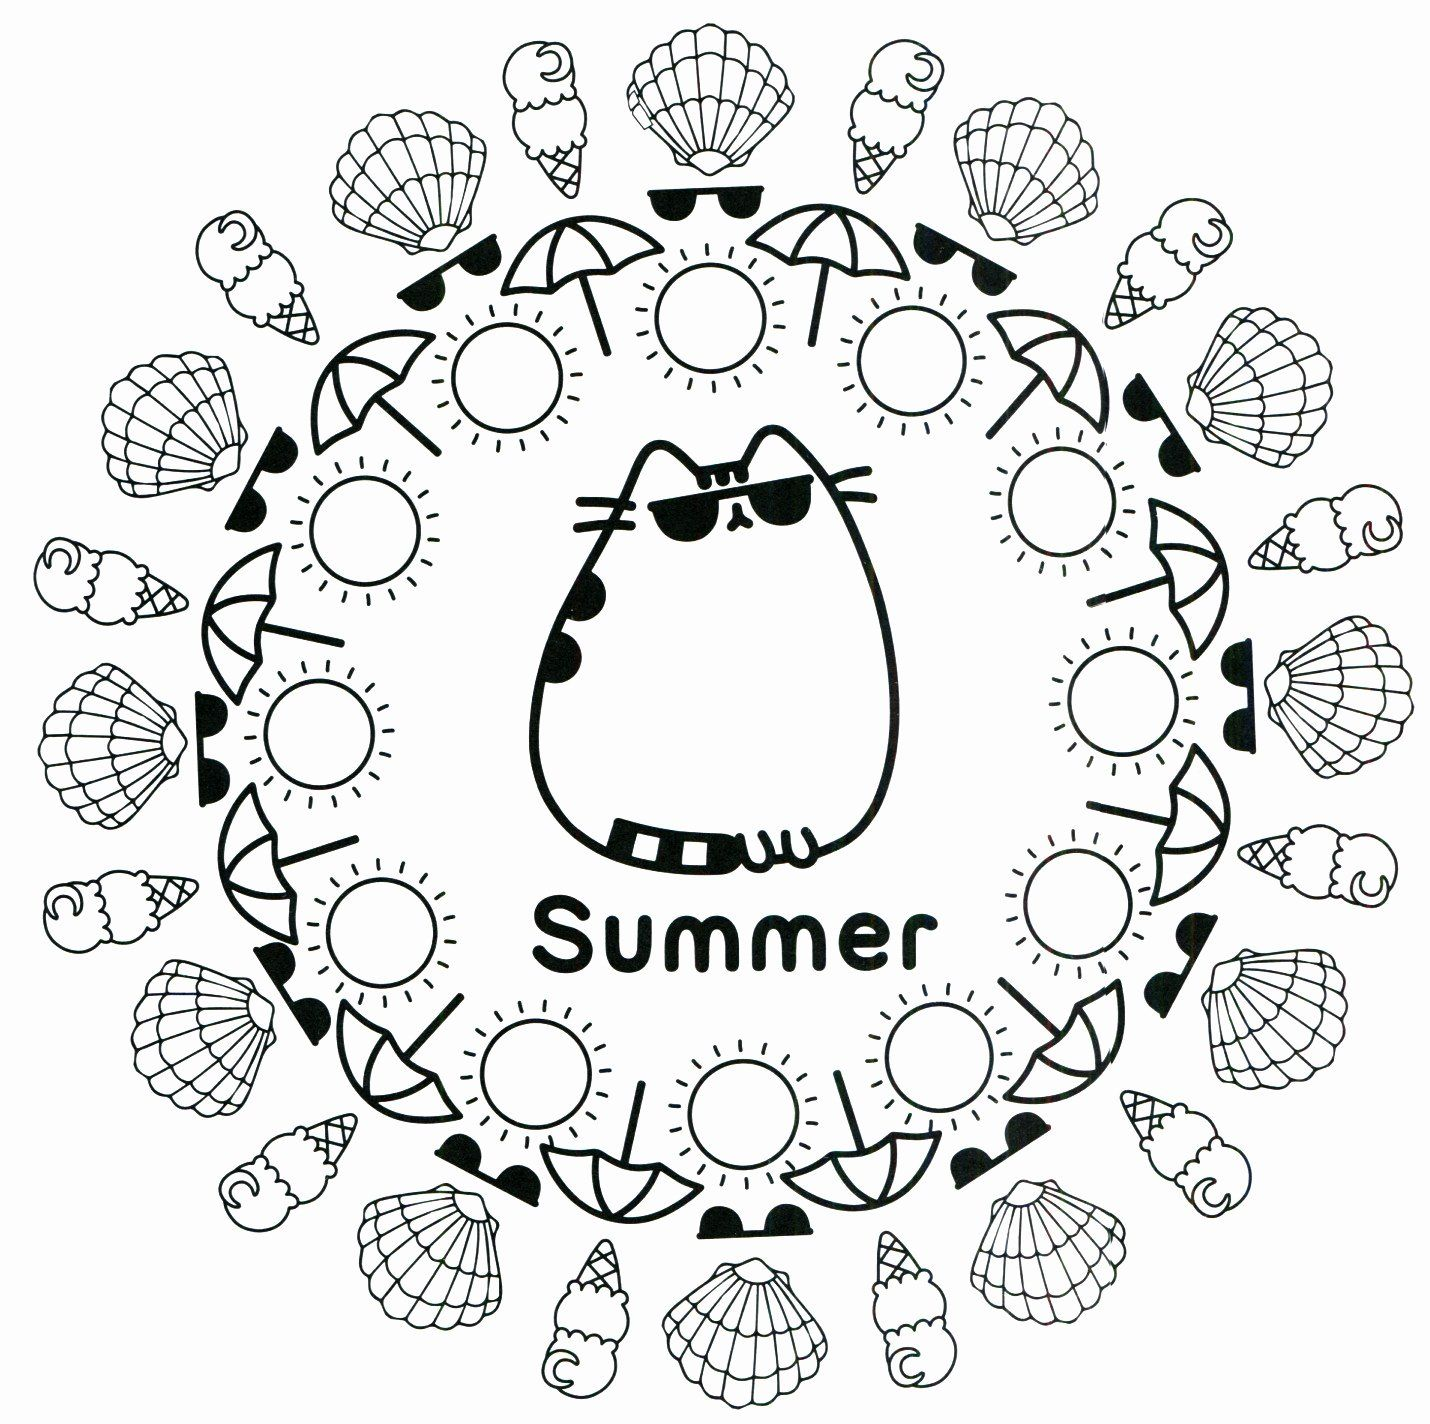 Summer Vacation Coloring Pages Beautiful Pusheen Coloring Pages Summer Summer Coloring Pages Pusheen Coloring Pages Coloring Pages For Teenagers